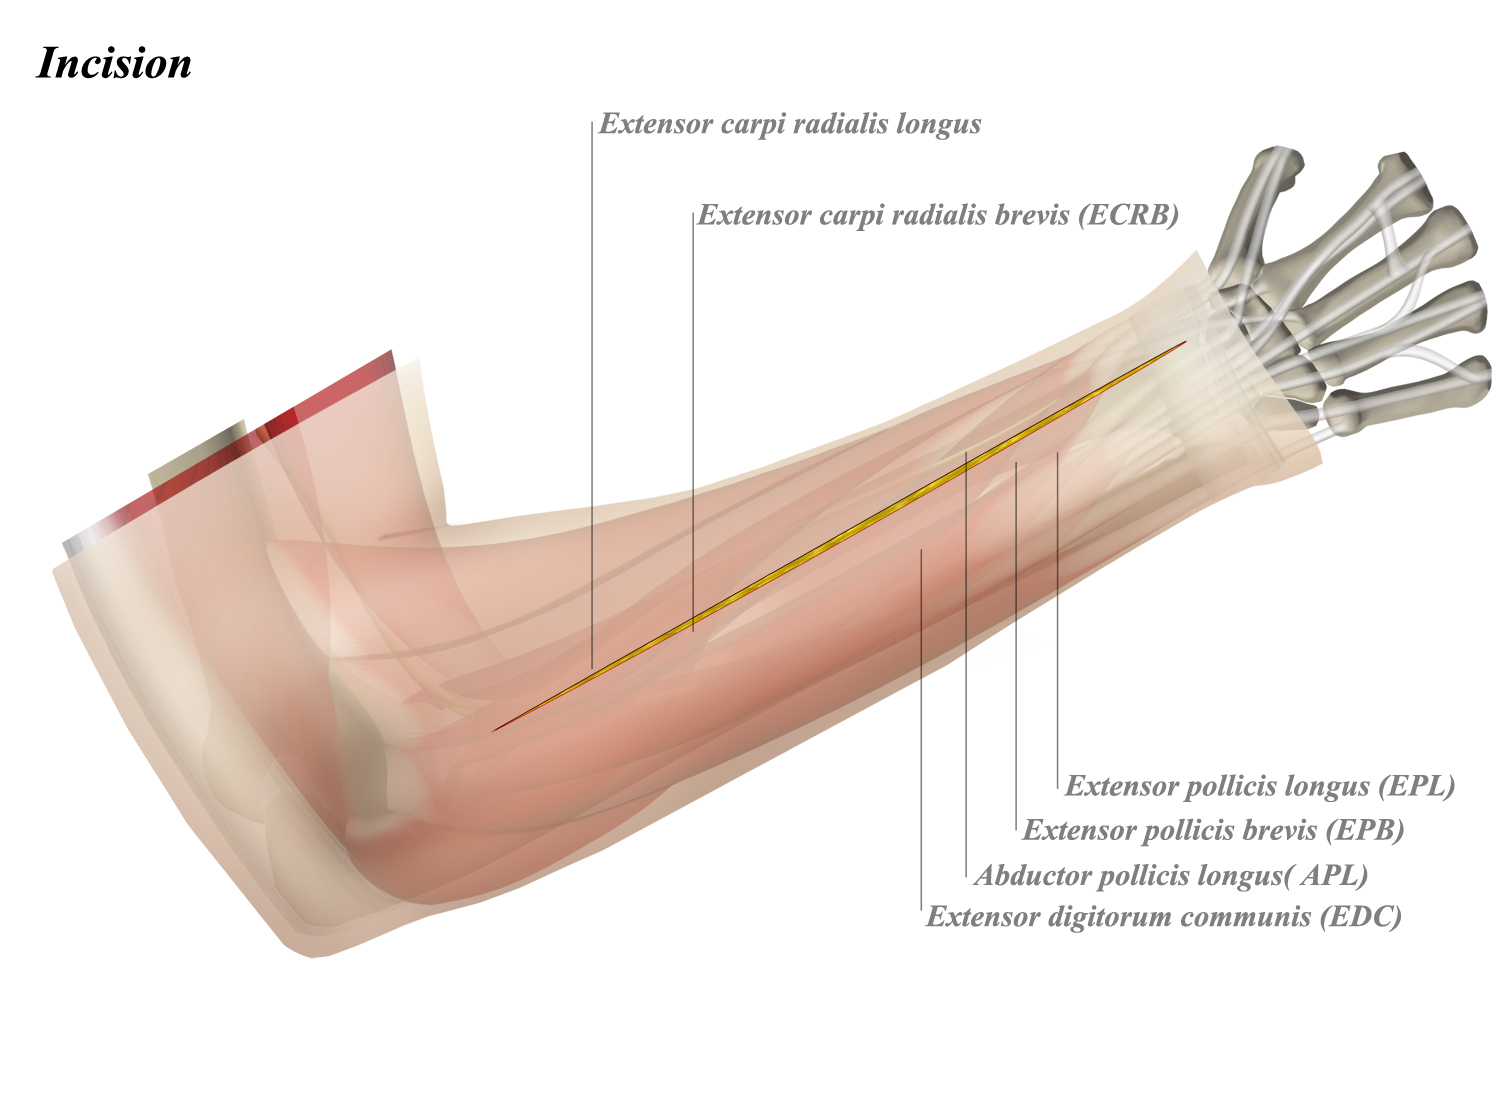 Forearm Dorsal Surgical Approach - Anatomy - Medbullets Step 2/3